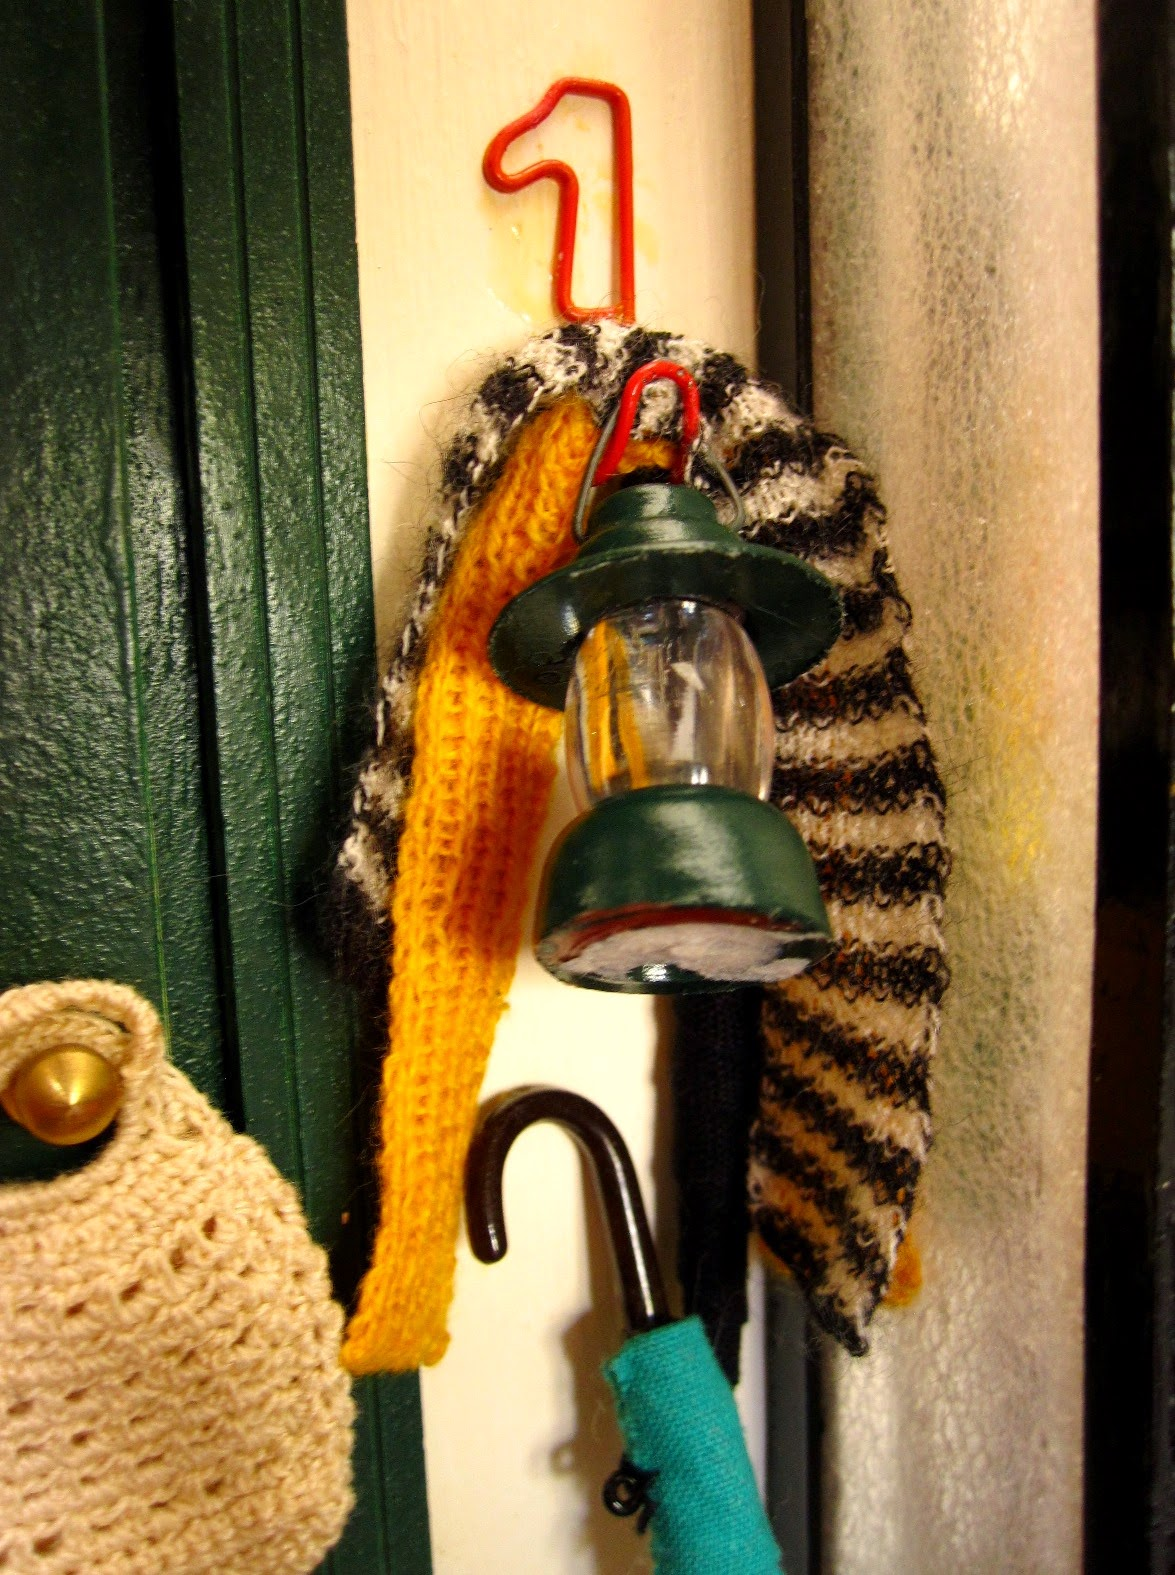 Modern dolls' house miniature wall hook holding two knitted scarves, a lantern and an umbrella.